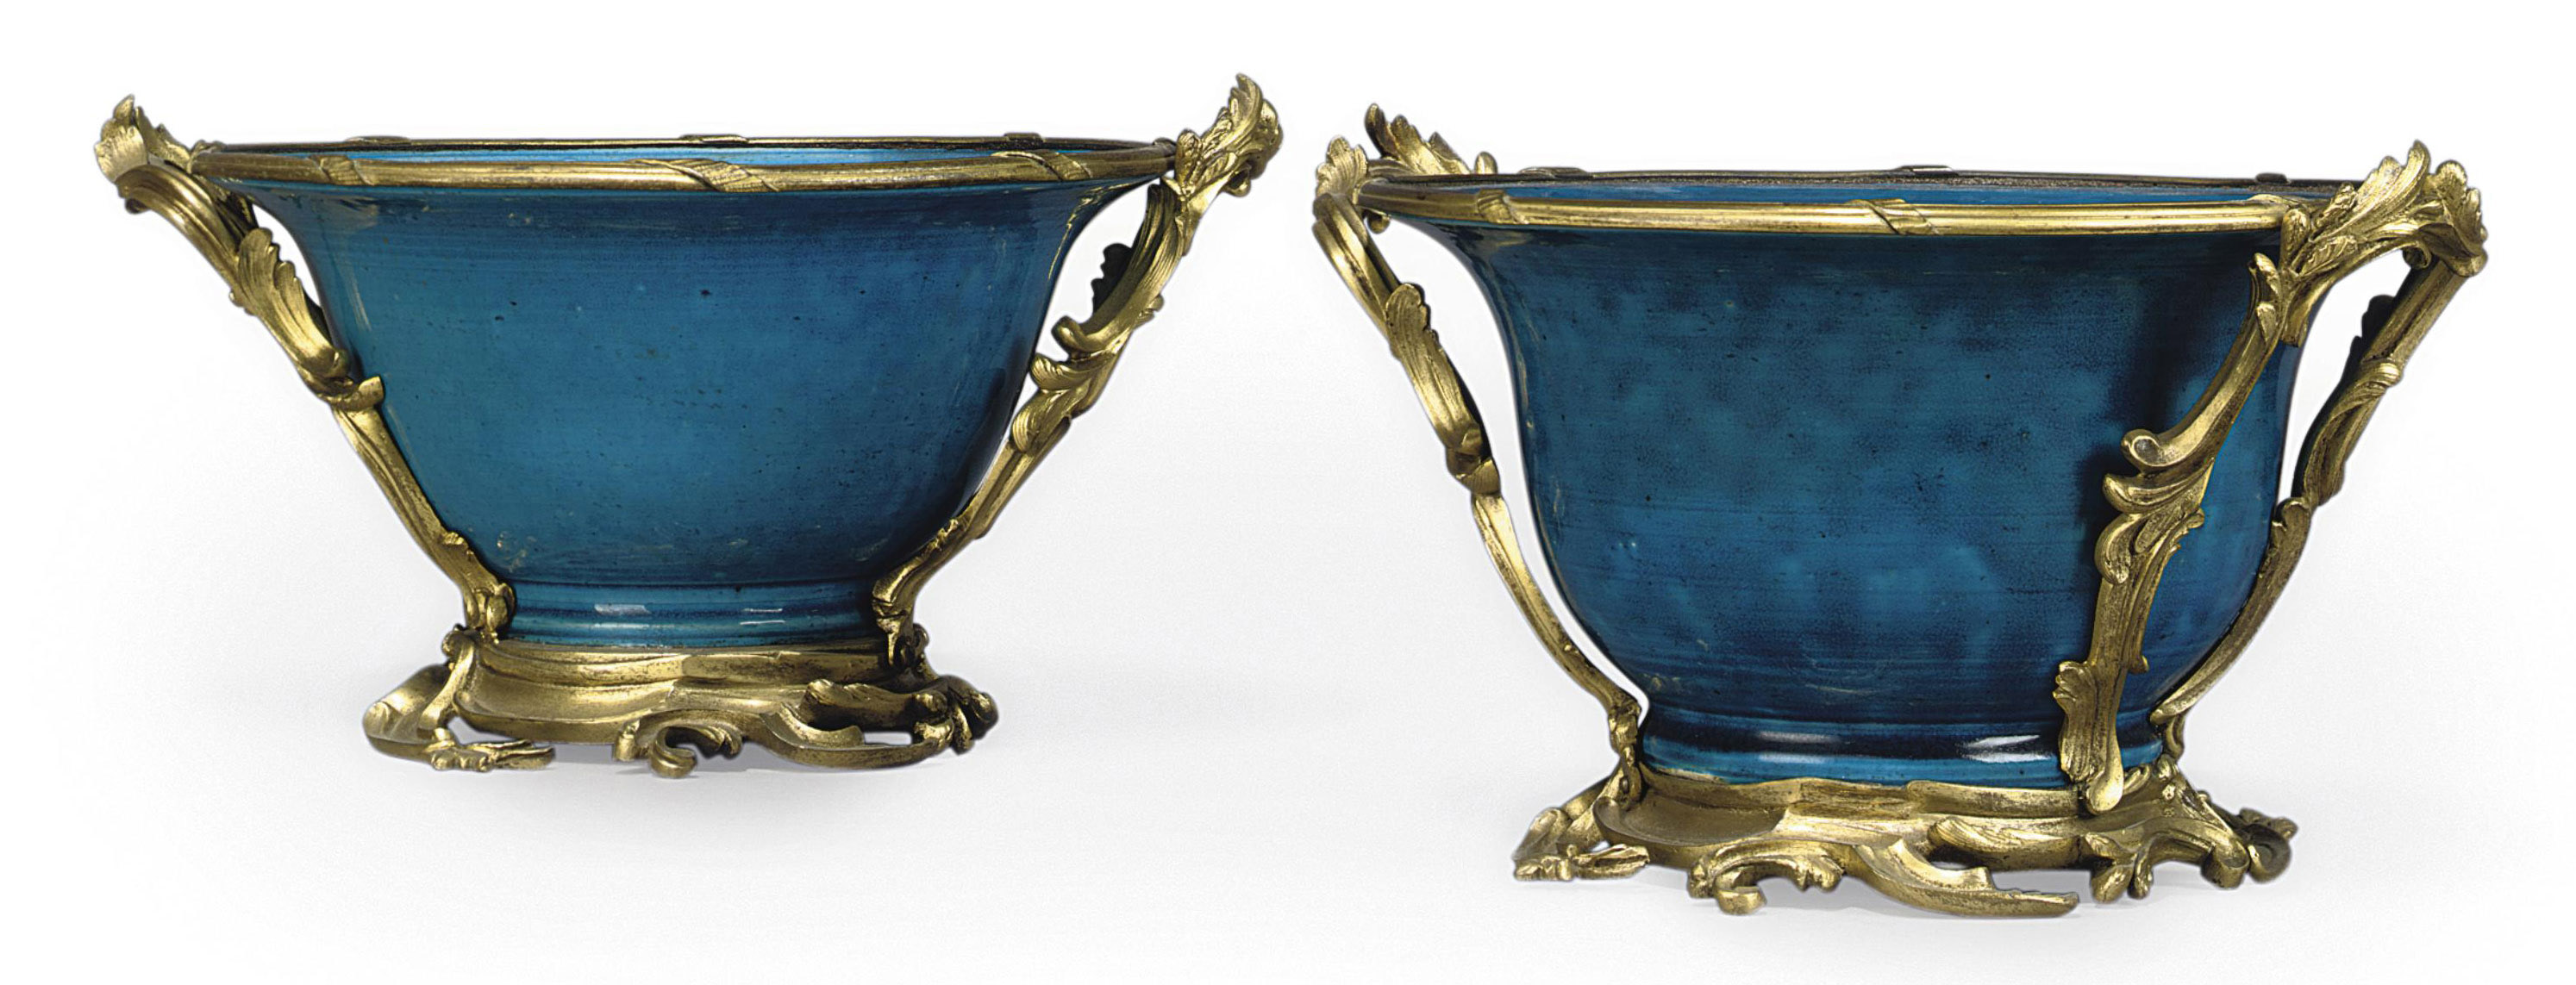 A PAIR OF FRENCH ORMOLU-MOUNTED CHINESE TURQUOISE PORCELAIN JARDINIERES